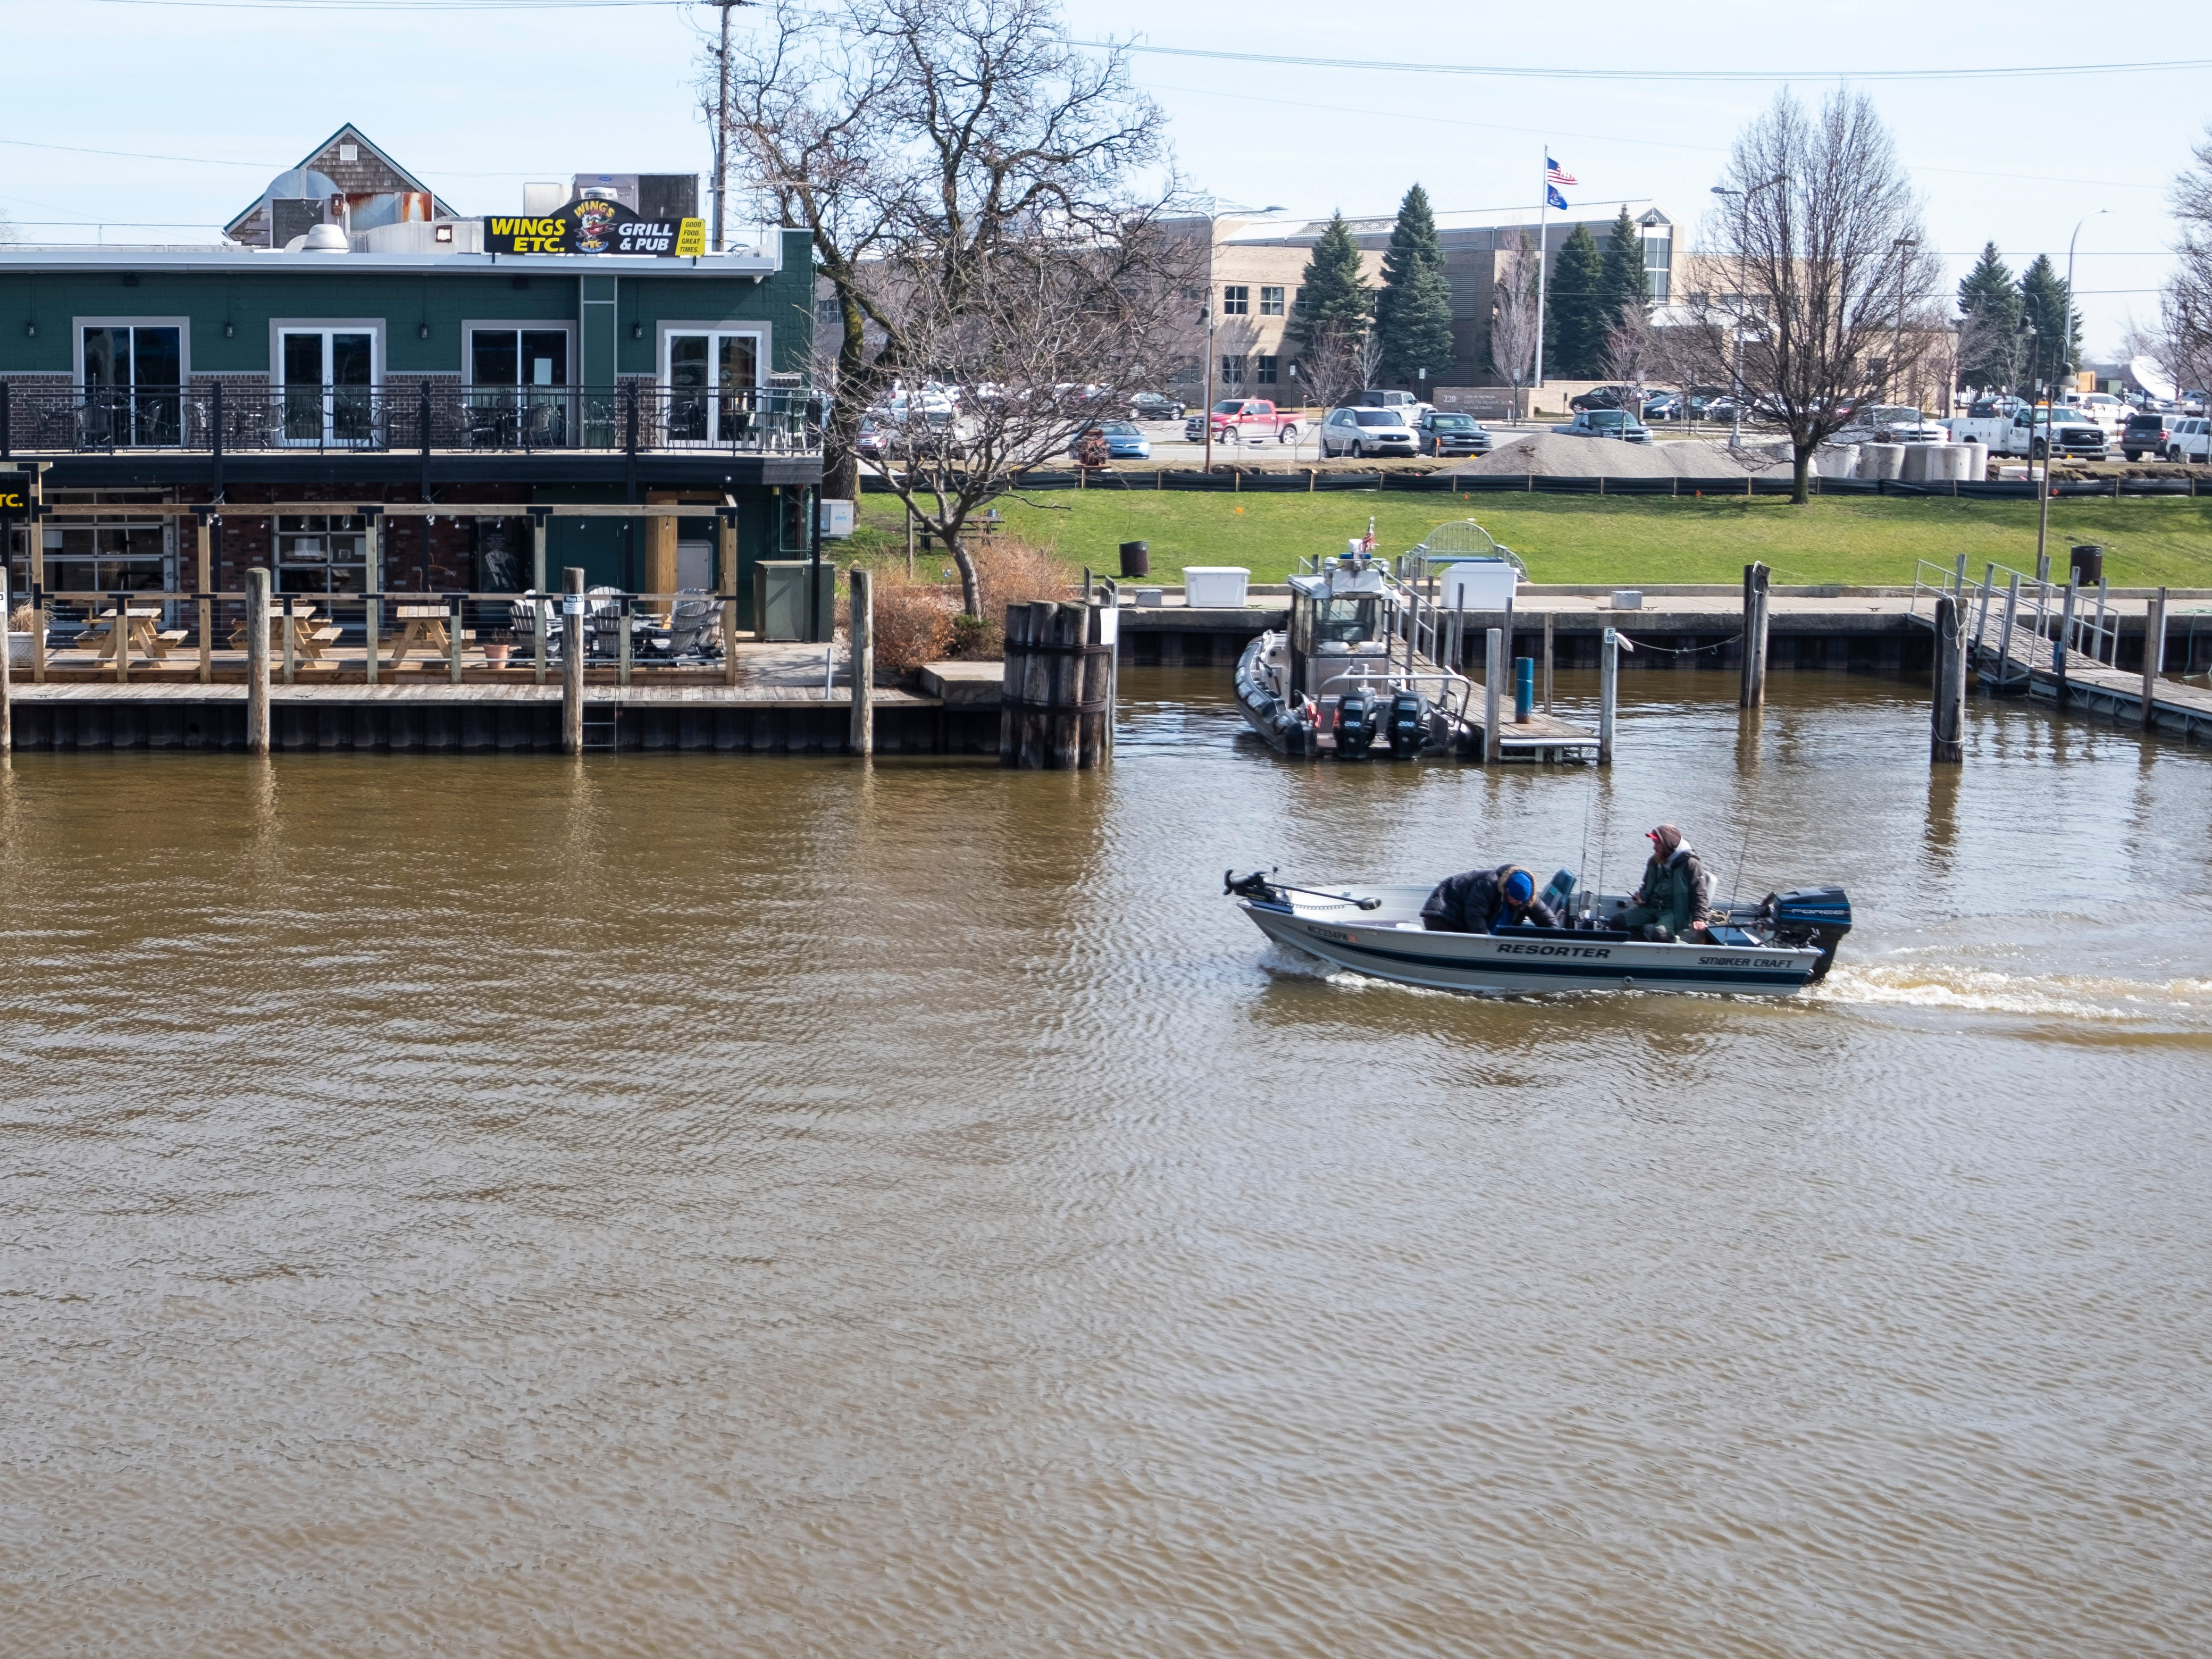 A fishing boat enters Port Huron on the Black River Wednesday, April 17, 2019.